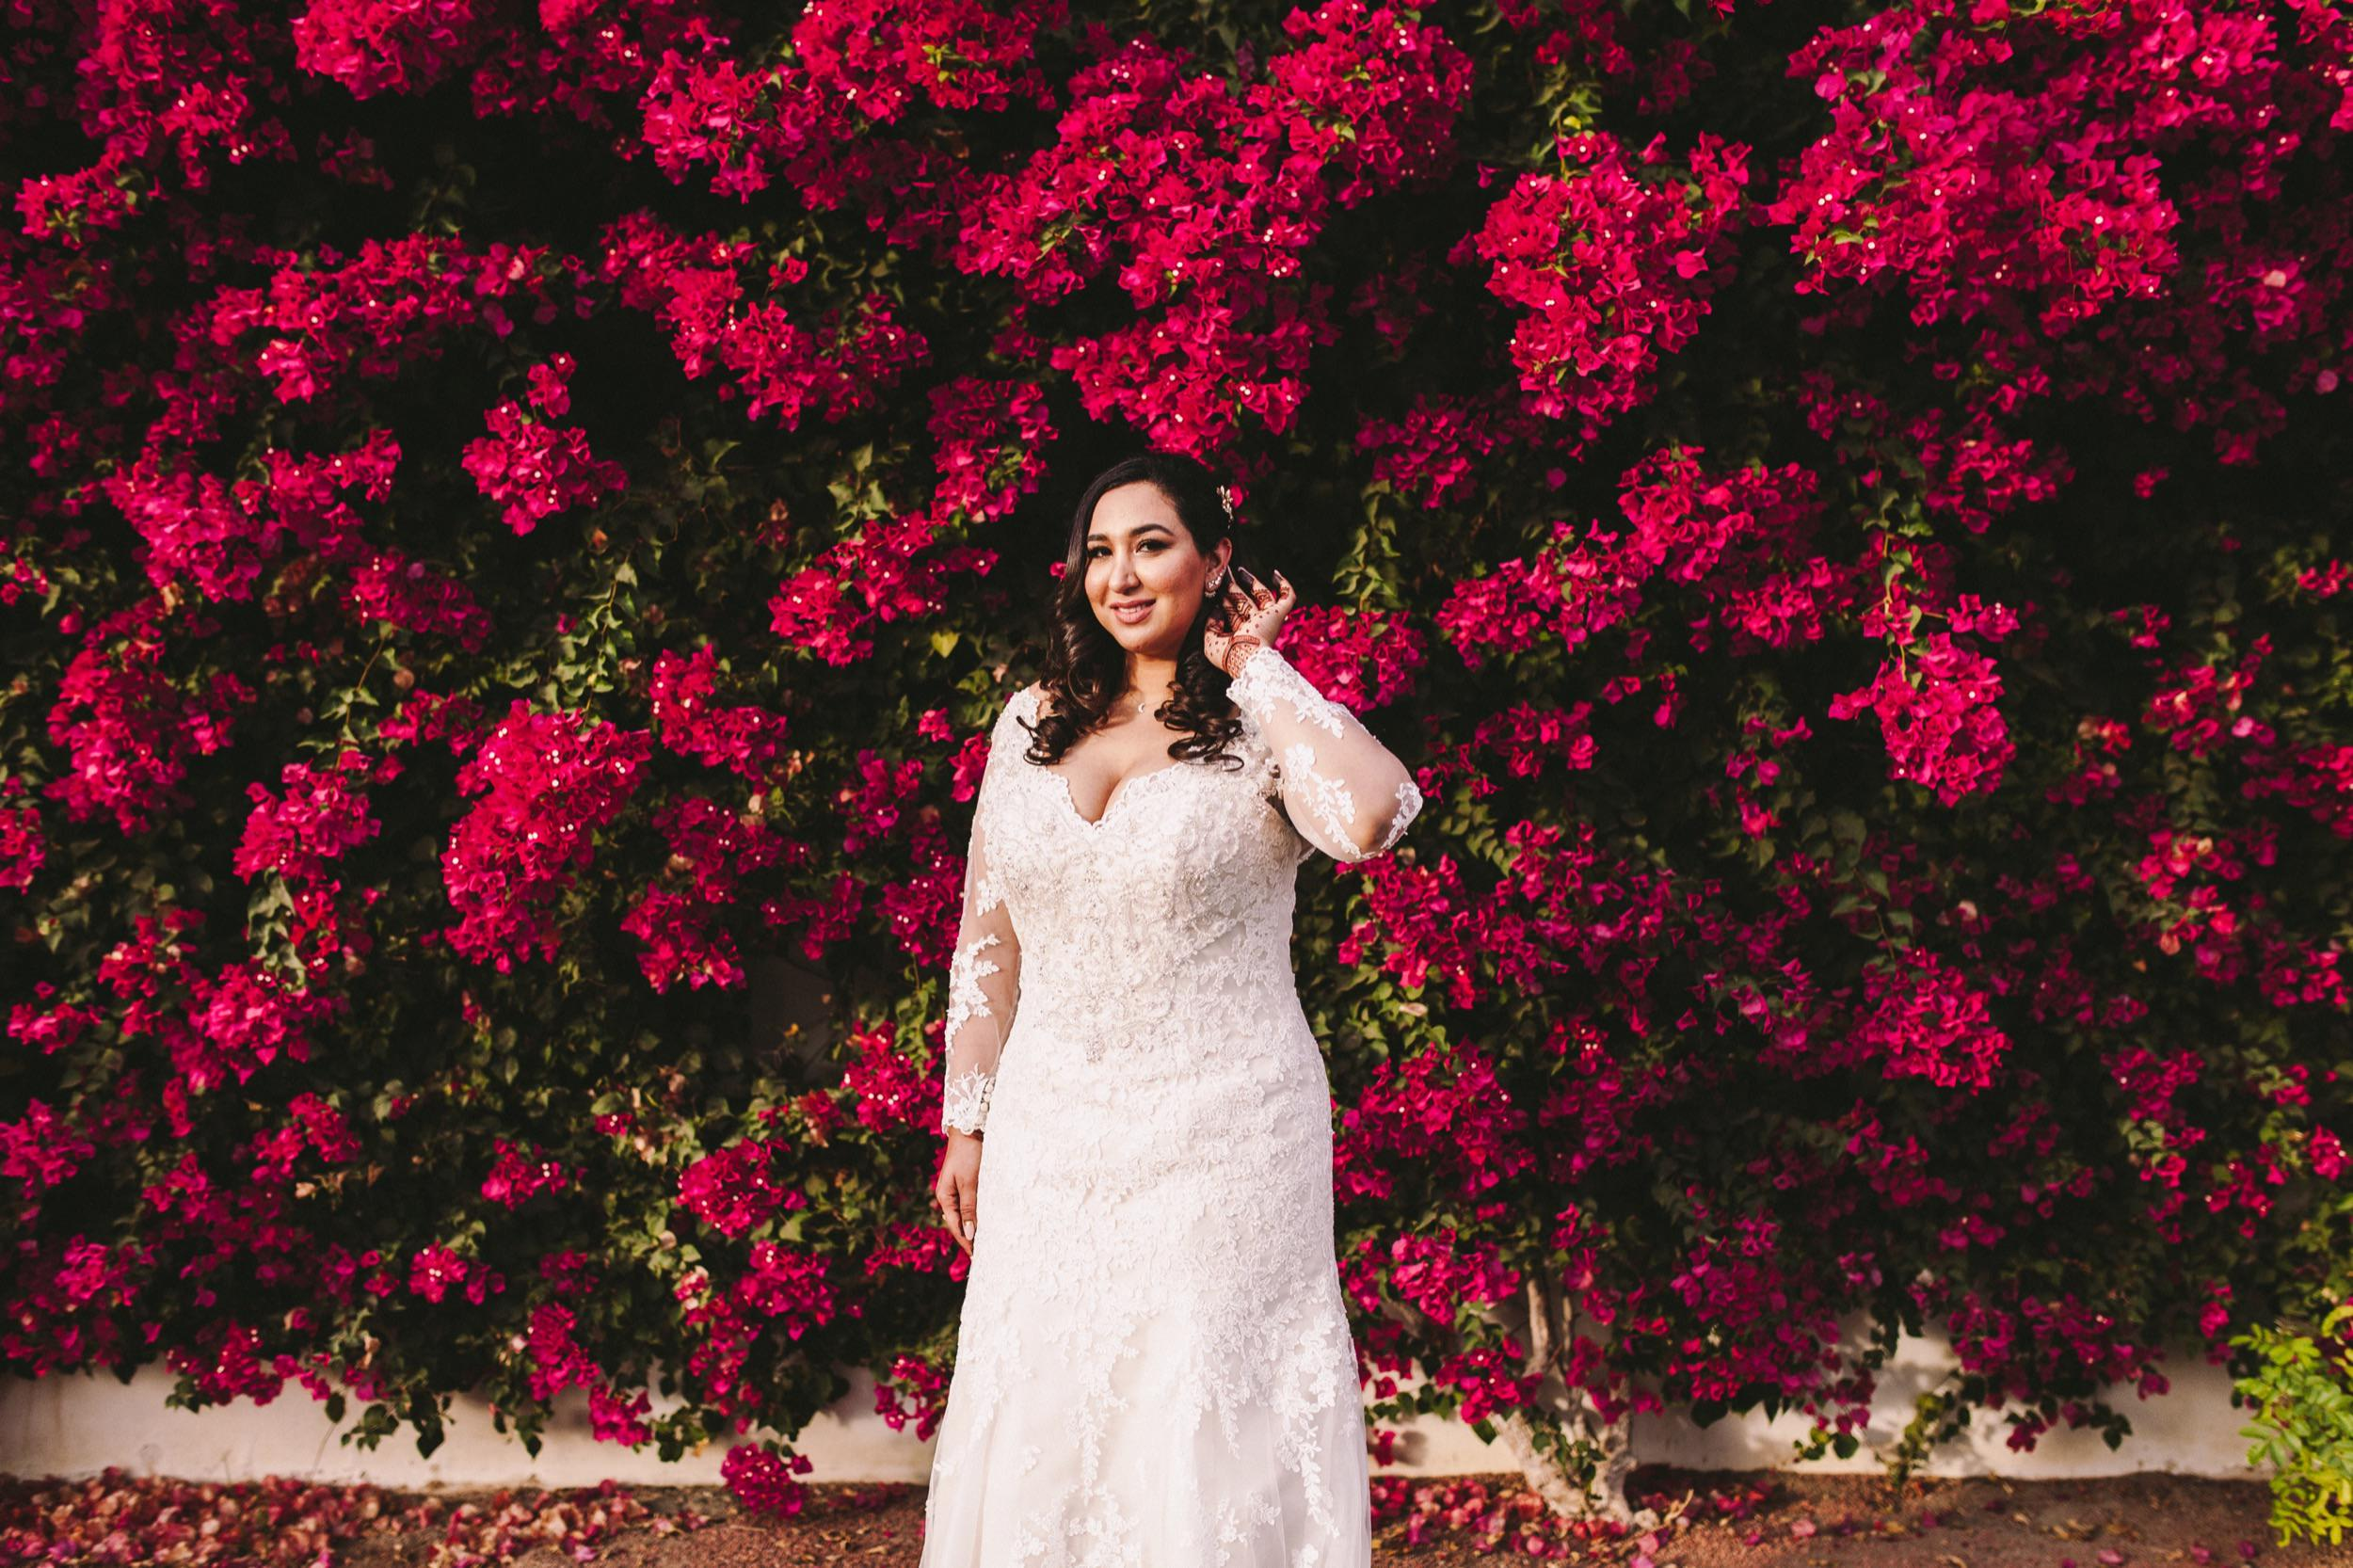 Bougainvillea Wedding Day Photo Backdrop